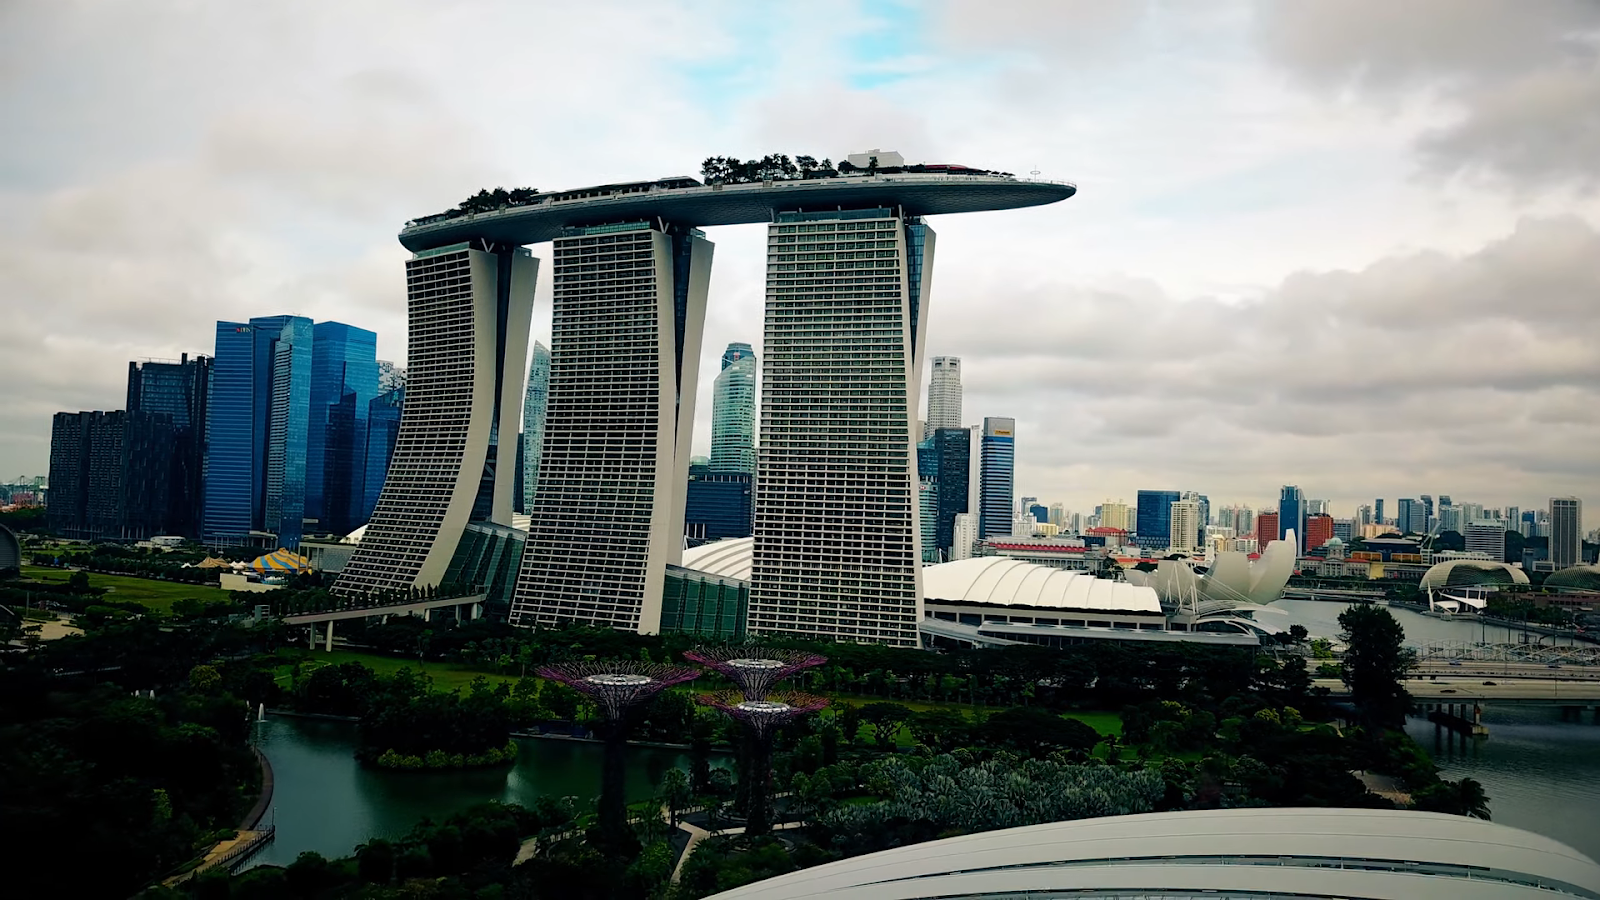 Singapore, 4th most sustainable city 2018